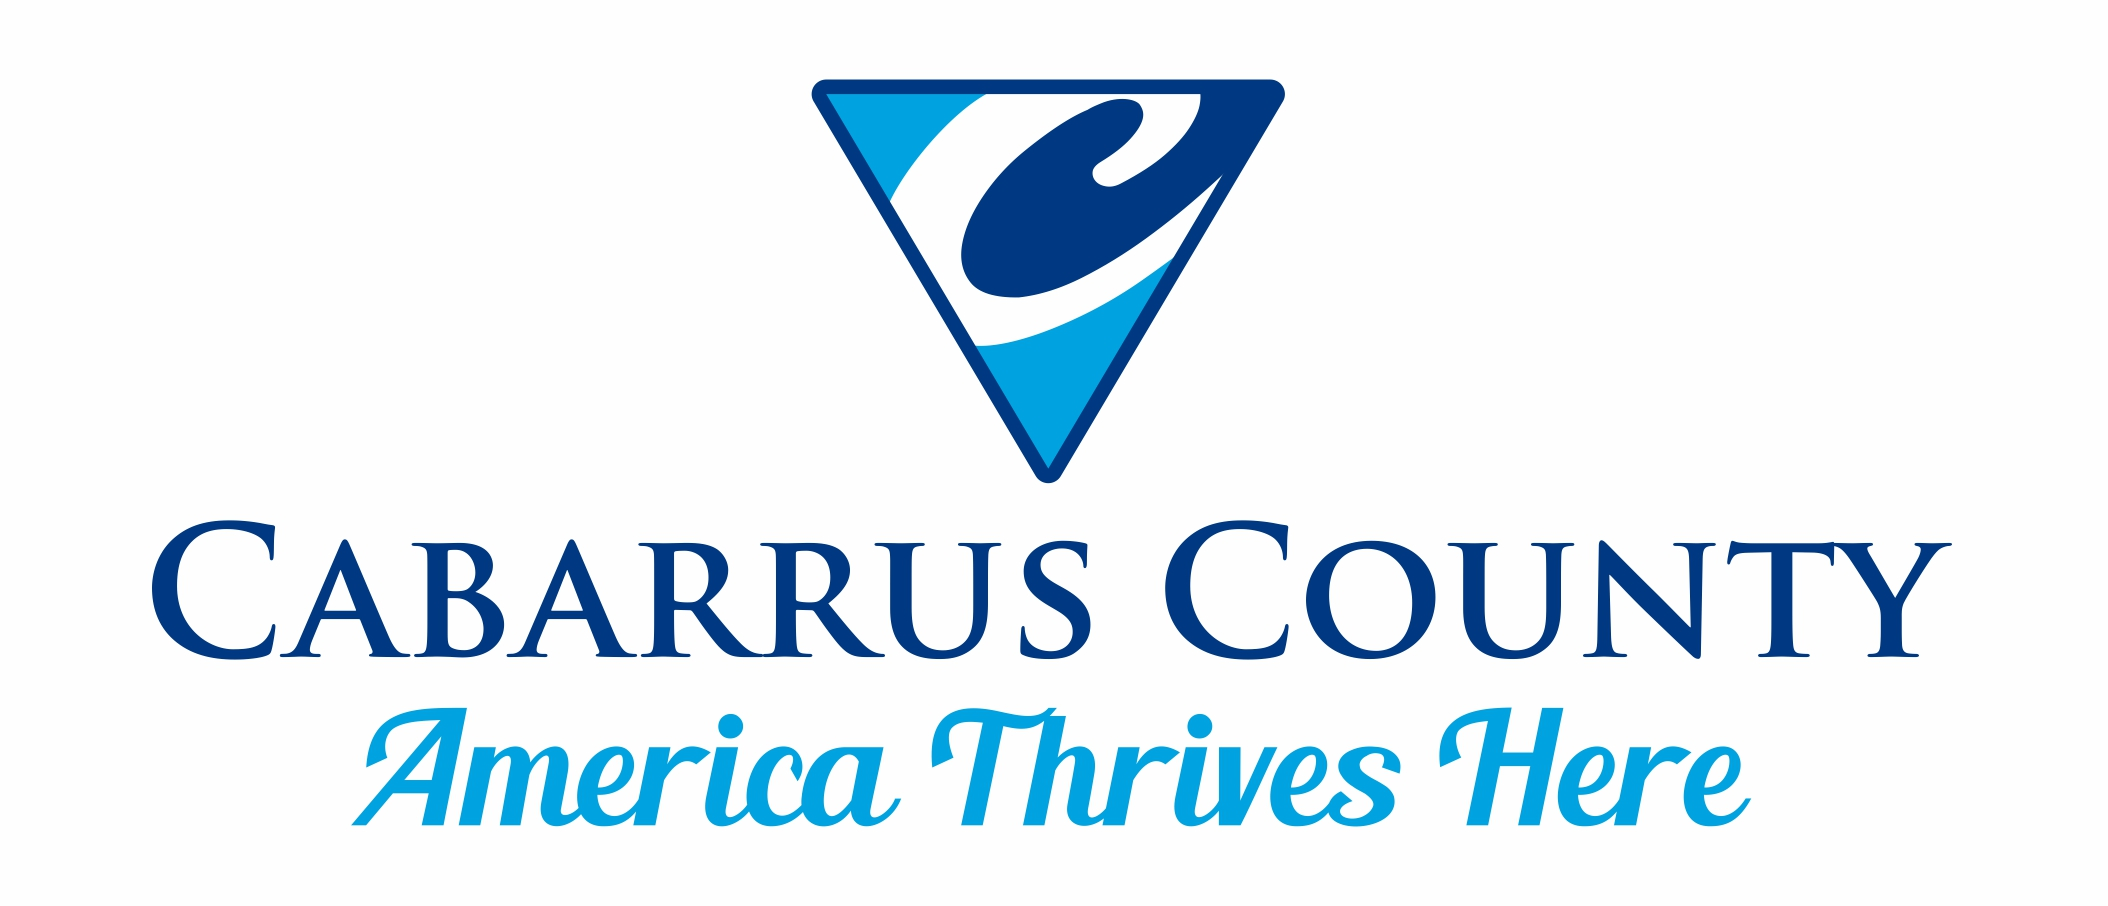 Cabarrus County North Carolina Logo - Avant Marketing Community & Destination Branding Case Study